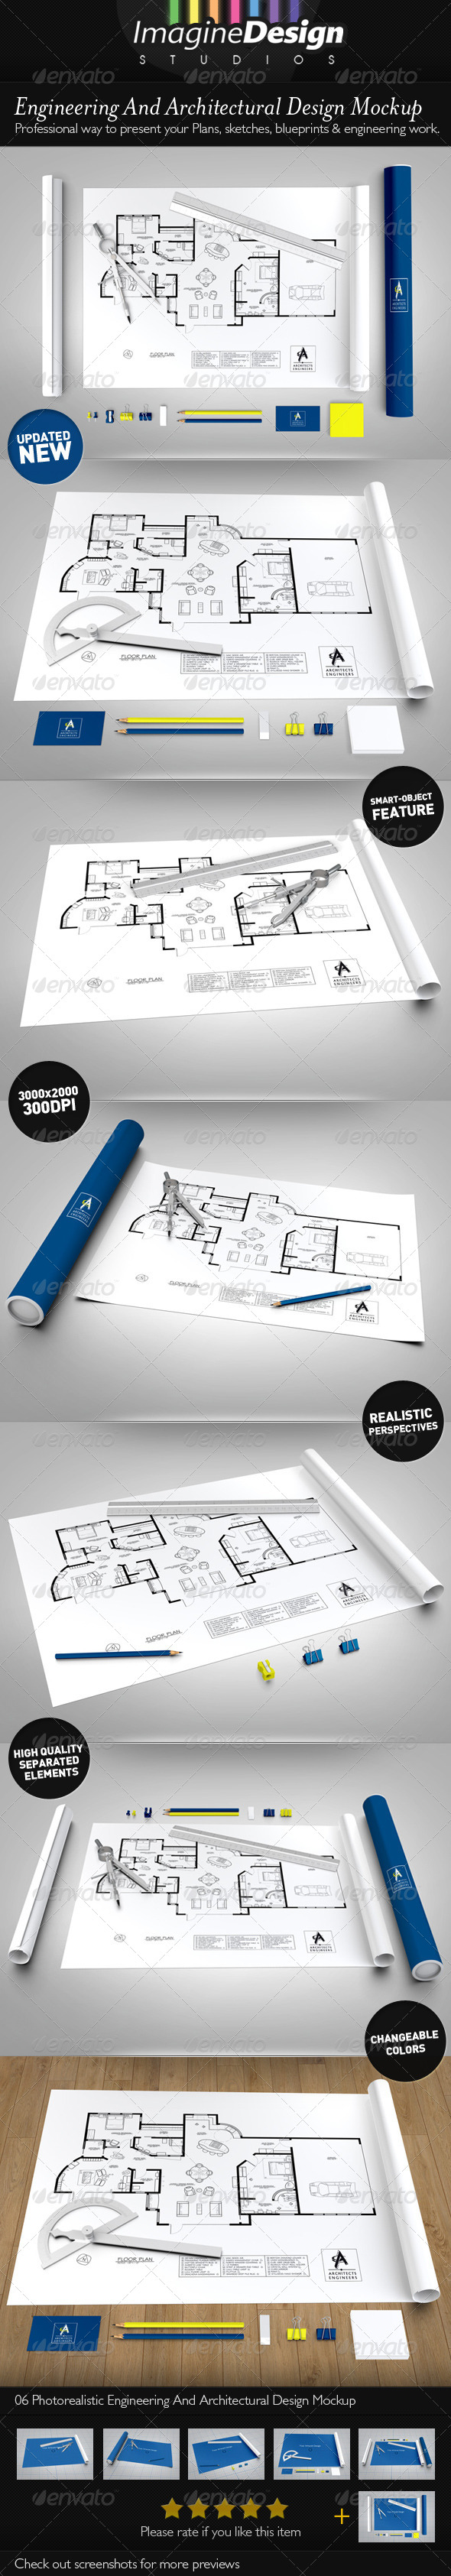 Engineering / Architectural Design Mock-up - Print Product Mock-Ups